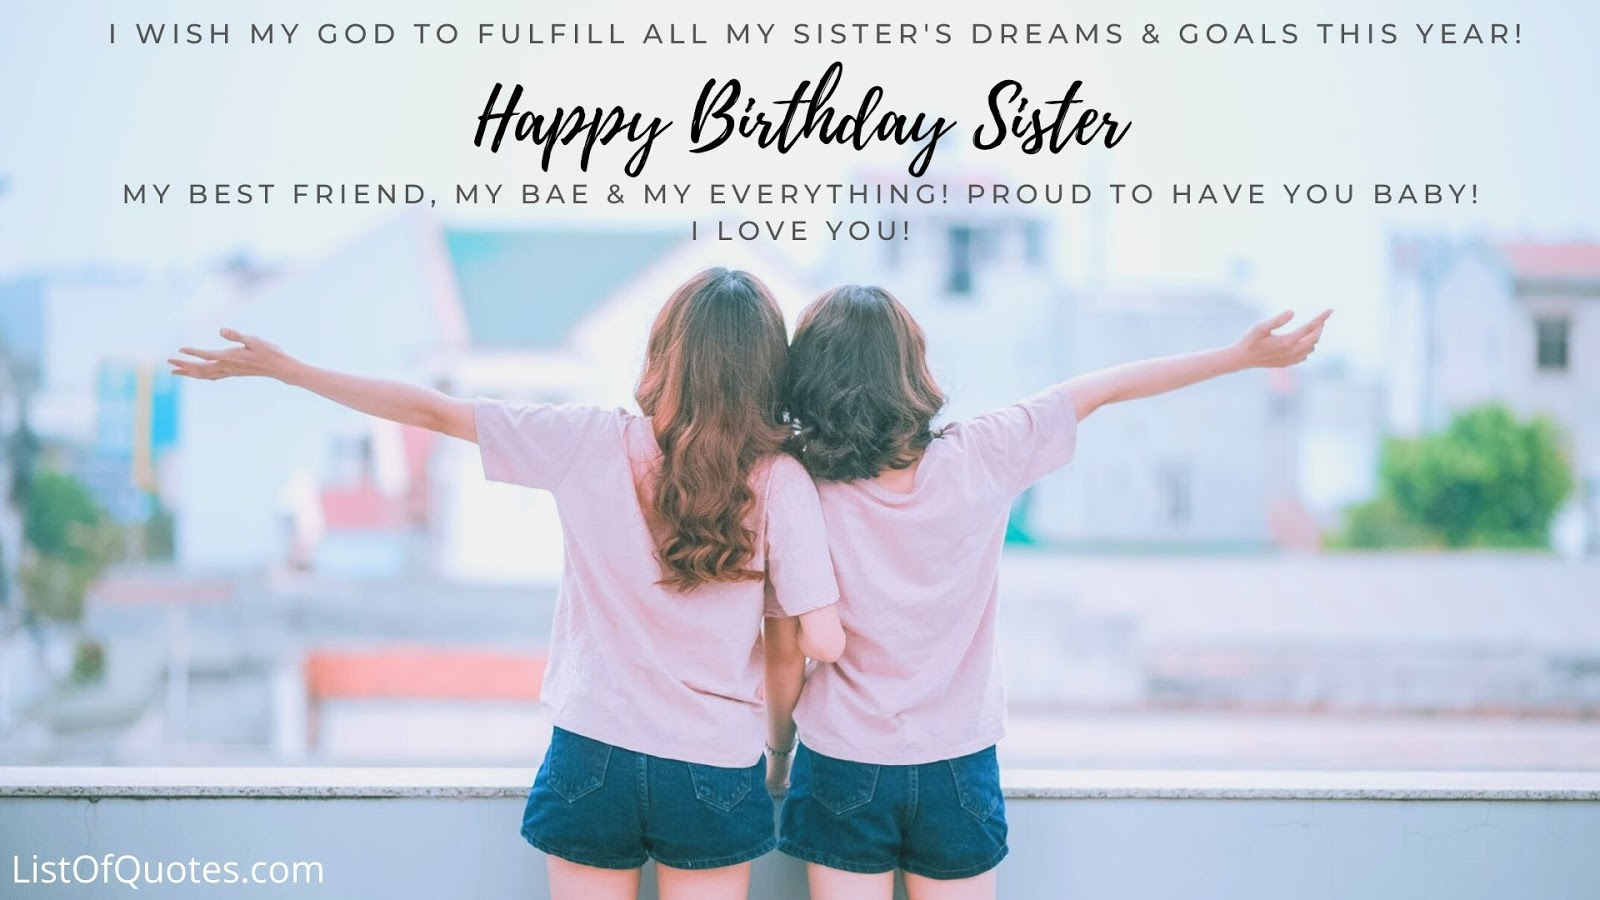 new happy birthday quotation funny images for sisters 2020